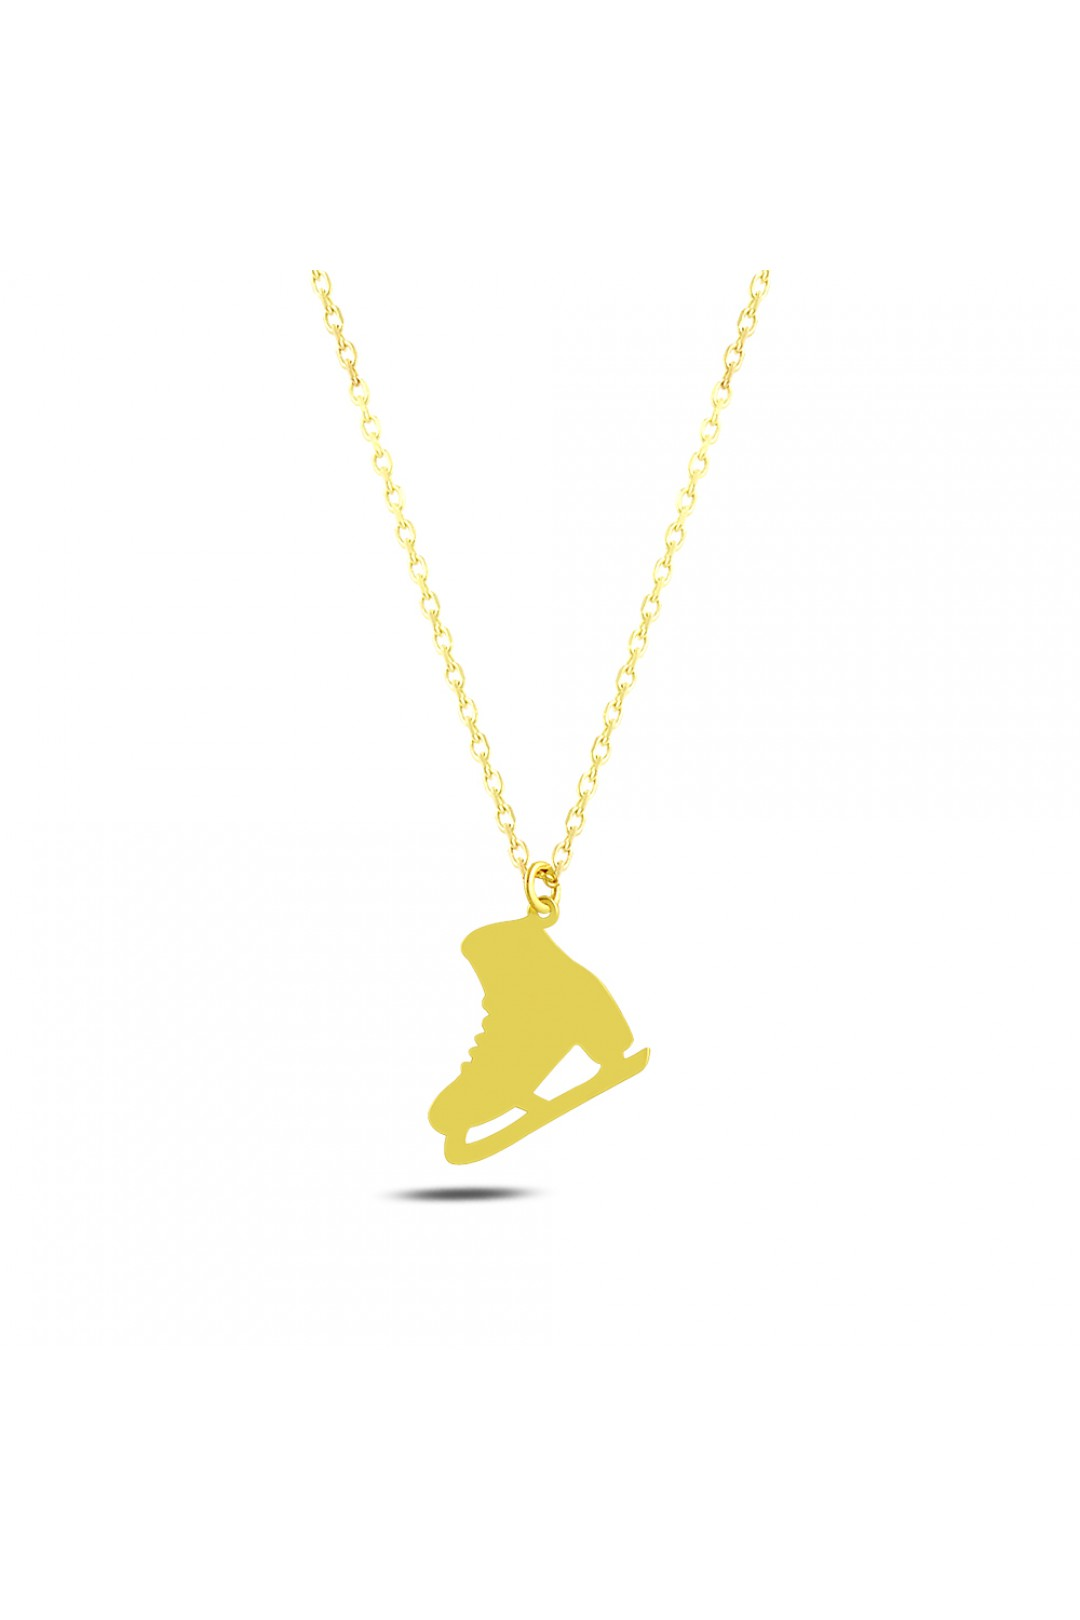 SKATE NECKLACE